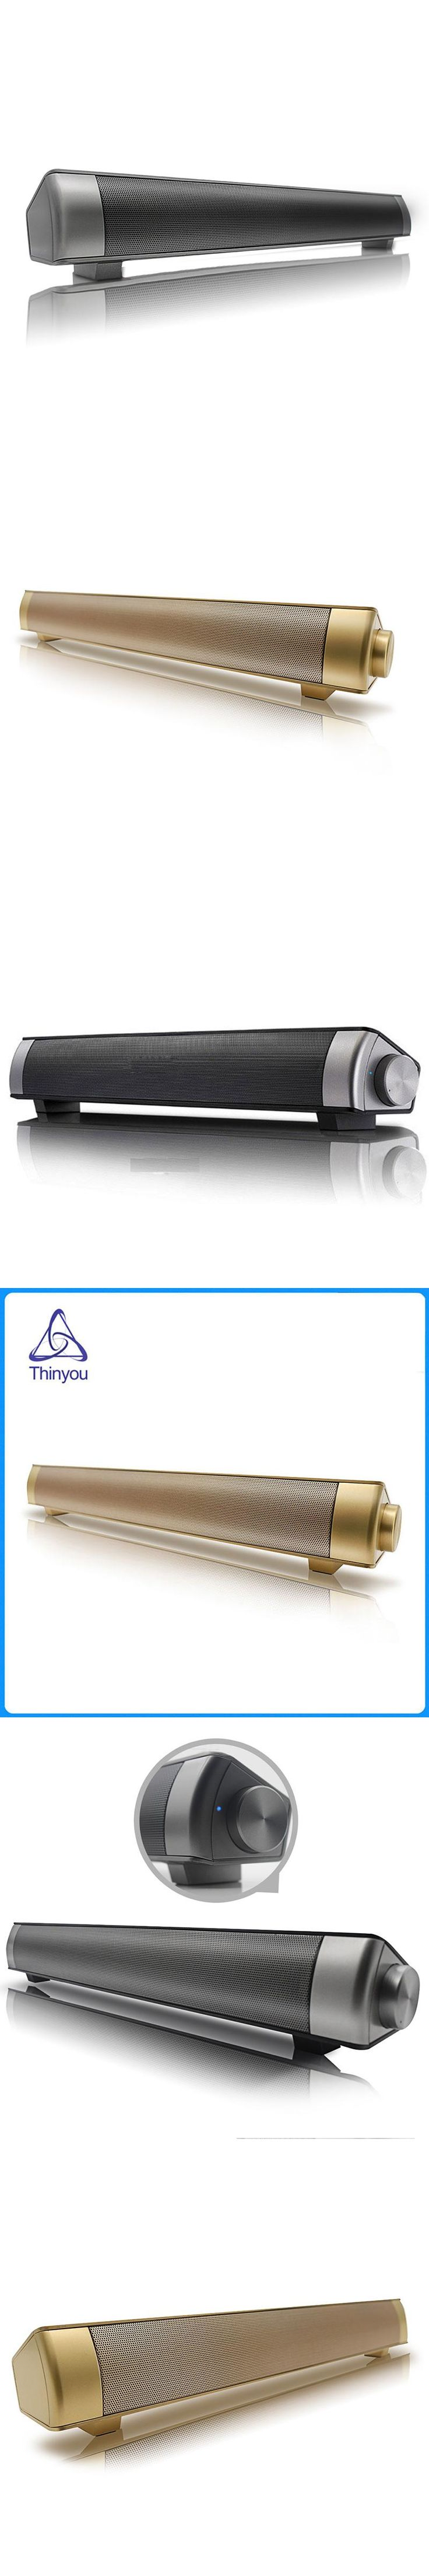 Thinyou Wireless Bluetooth Speaker Sound bar HIFI Subwoofer Boom box Stereo Portable hands-free Party speakers for Cellphone PC